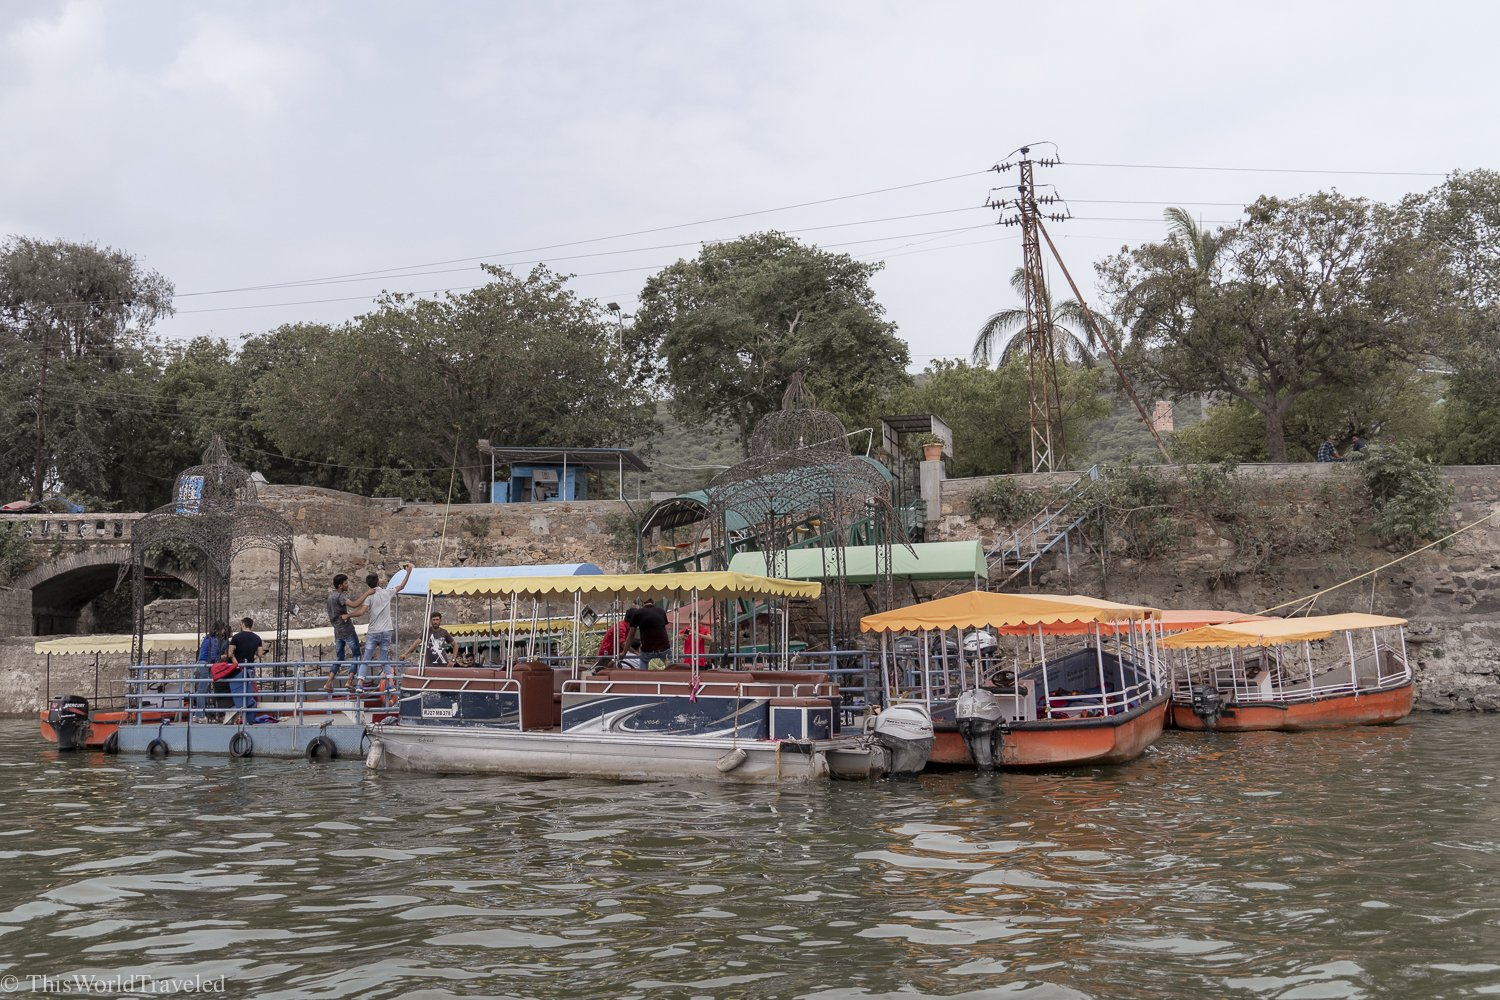 The boat docks on Lake Pichola where you can take a boat ride around the lake